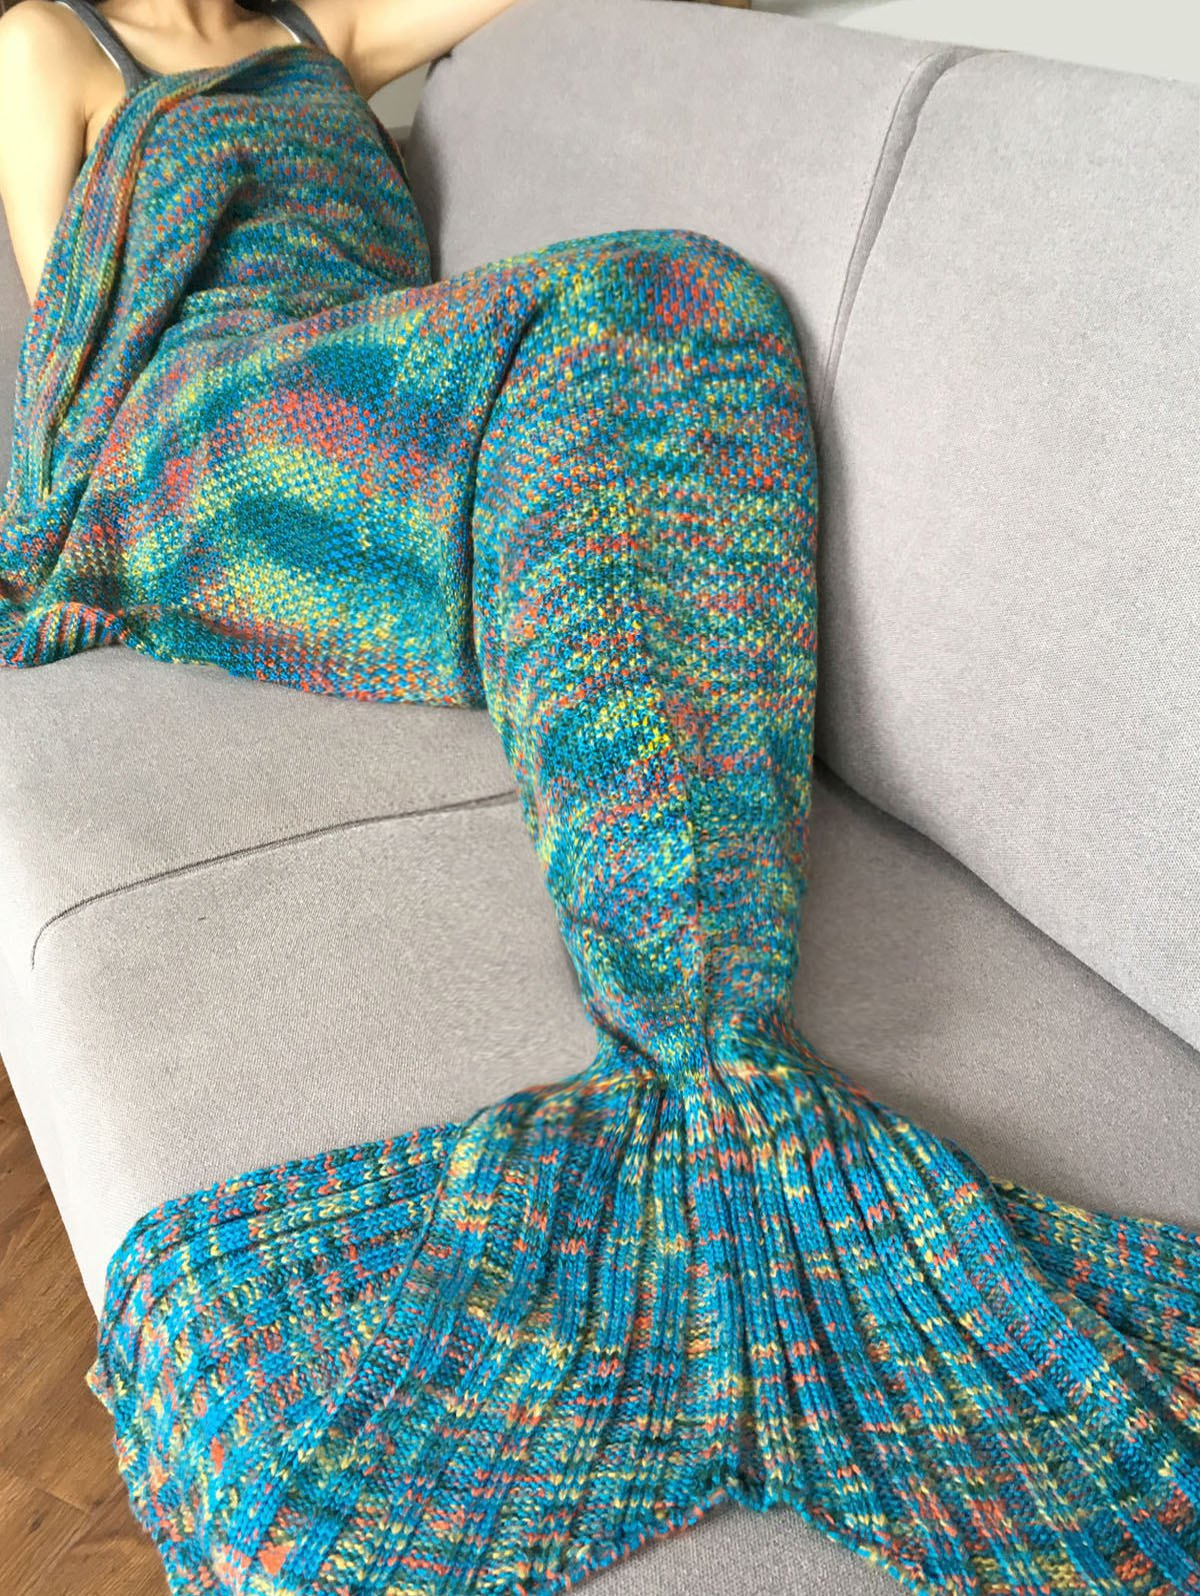 Mermaid Cocoon Knitting Pattern Fashion Crochet Knitted Super Soft Mermaid Tail Shape Blanket For Adult